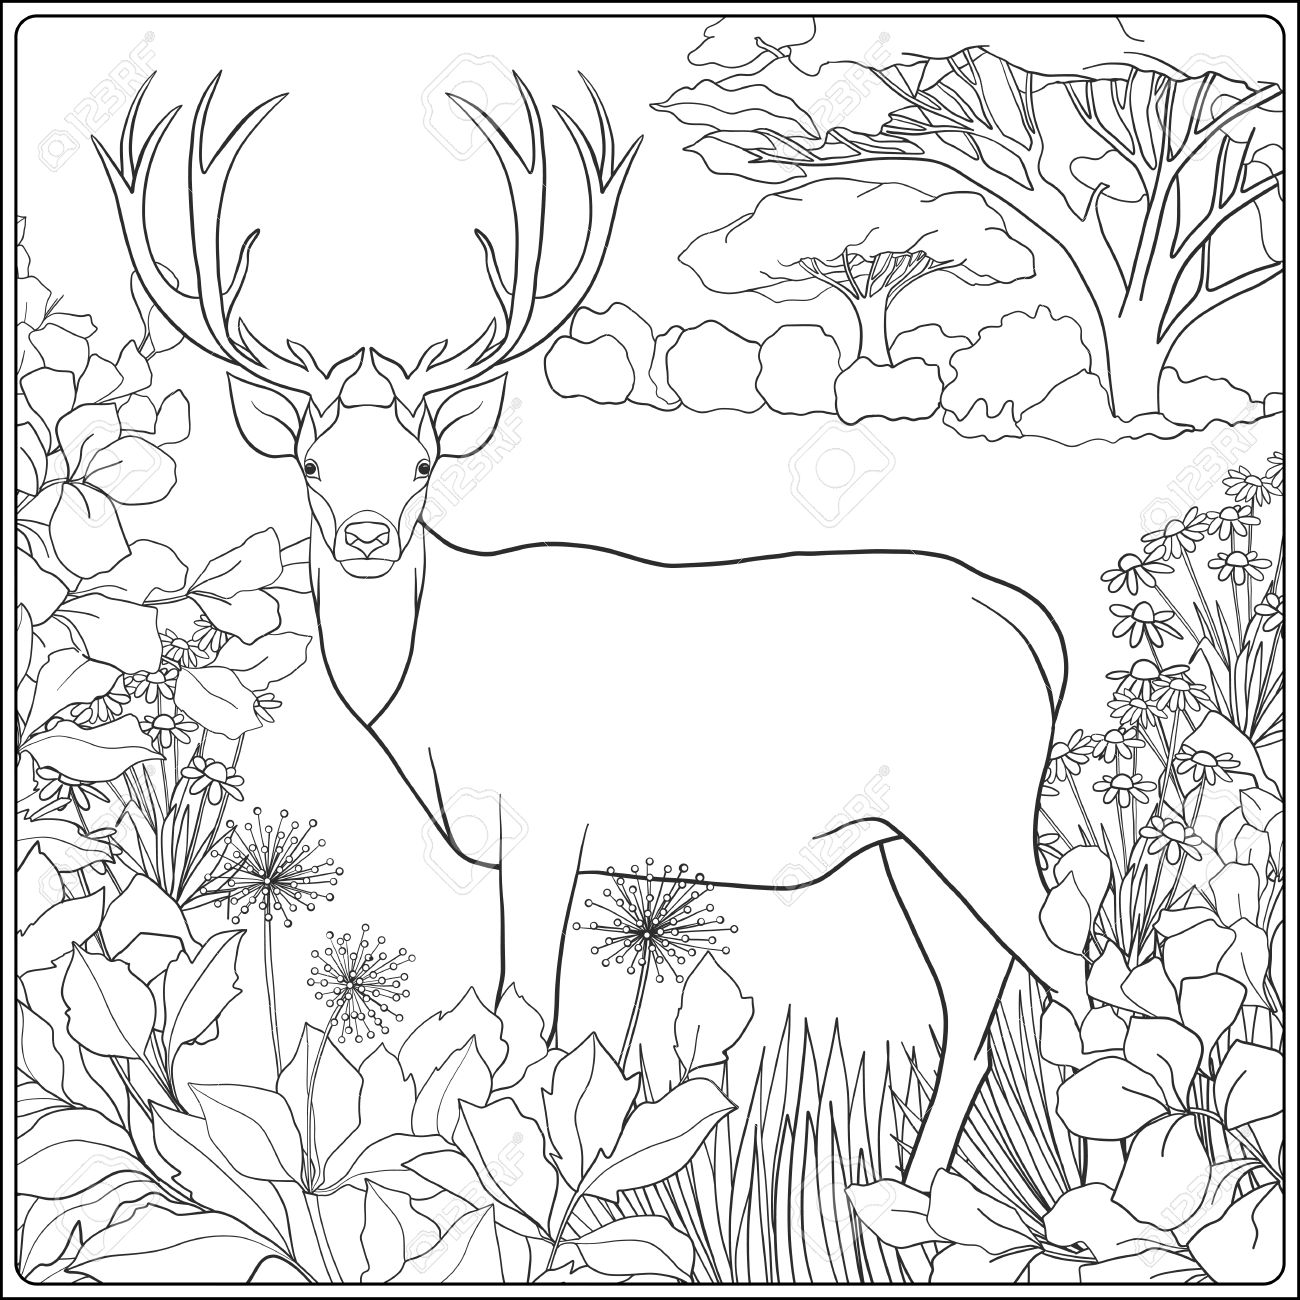 coloring page with deer in forest coloring book for and